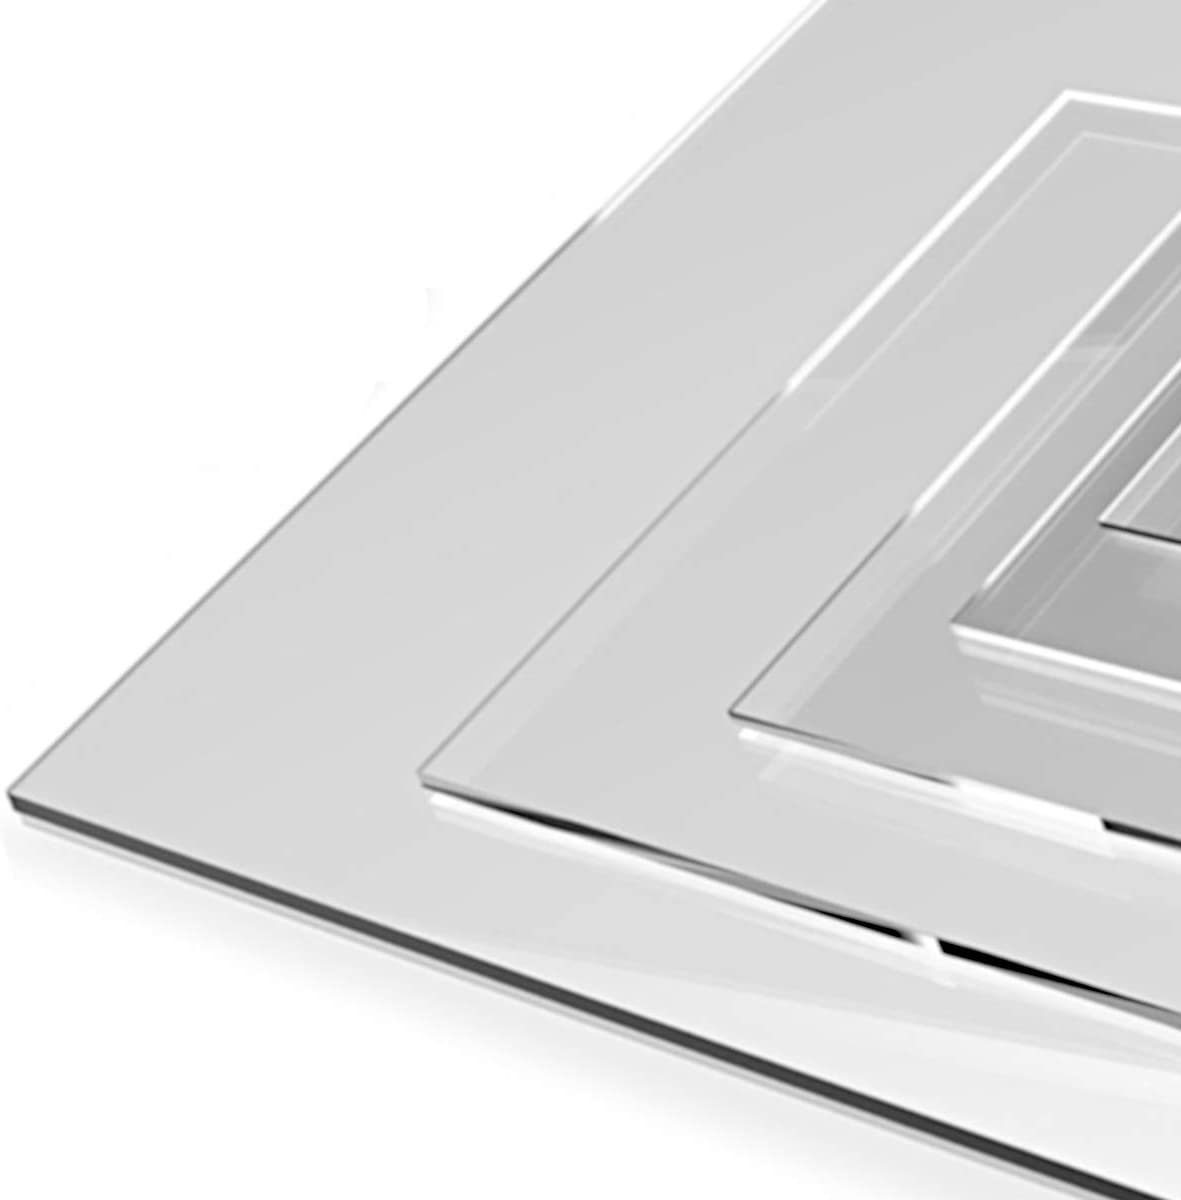 High Transparency Superior Quality A5 Clear Acrylic Plastic Perspex Sheet Panel Shatterproof 3mm 148 x 210 mm